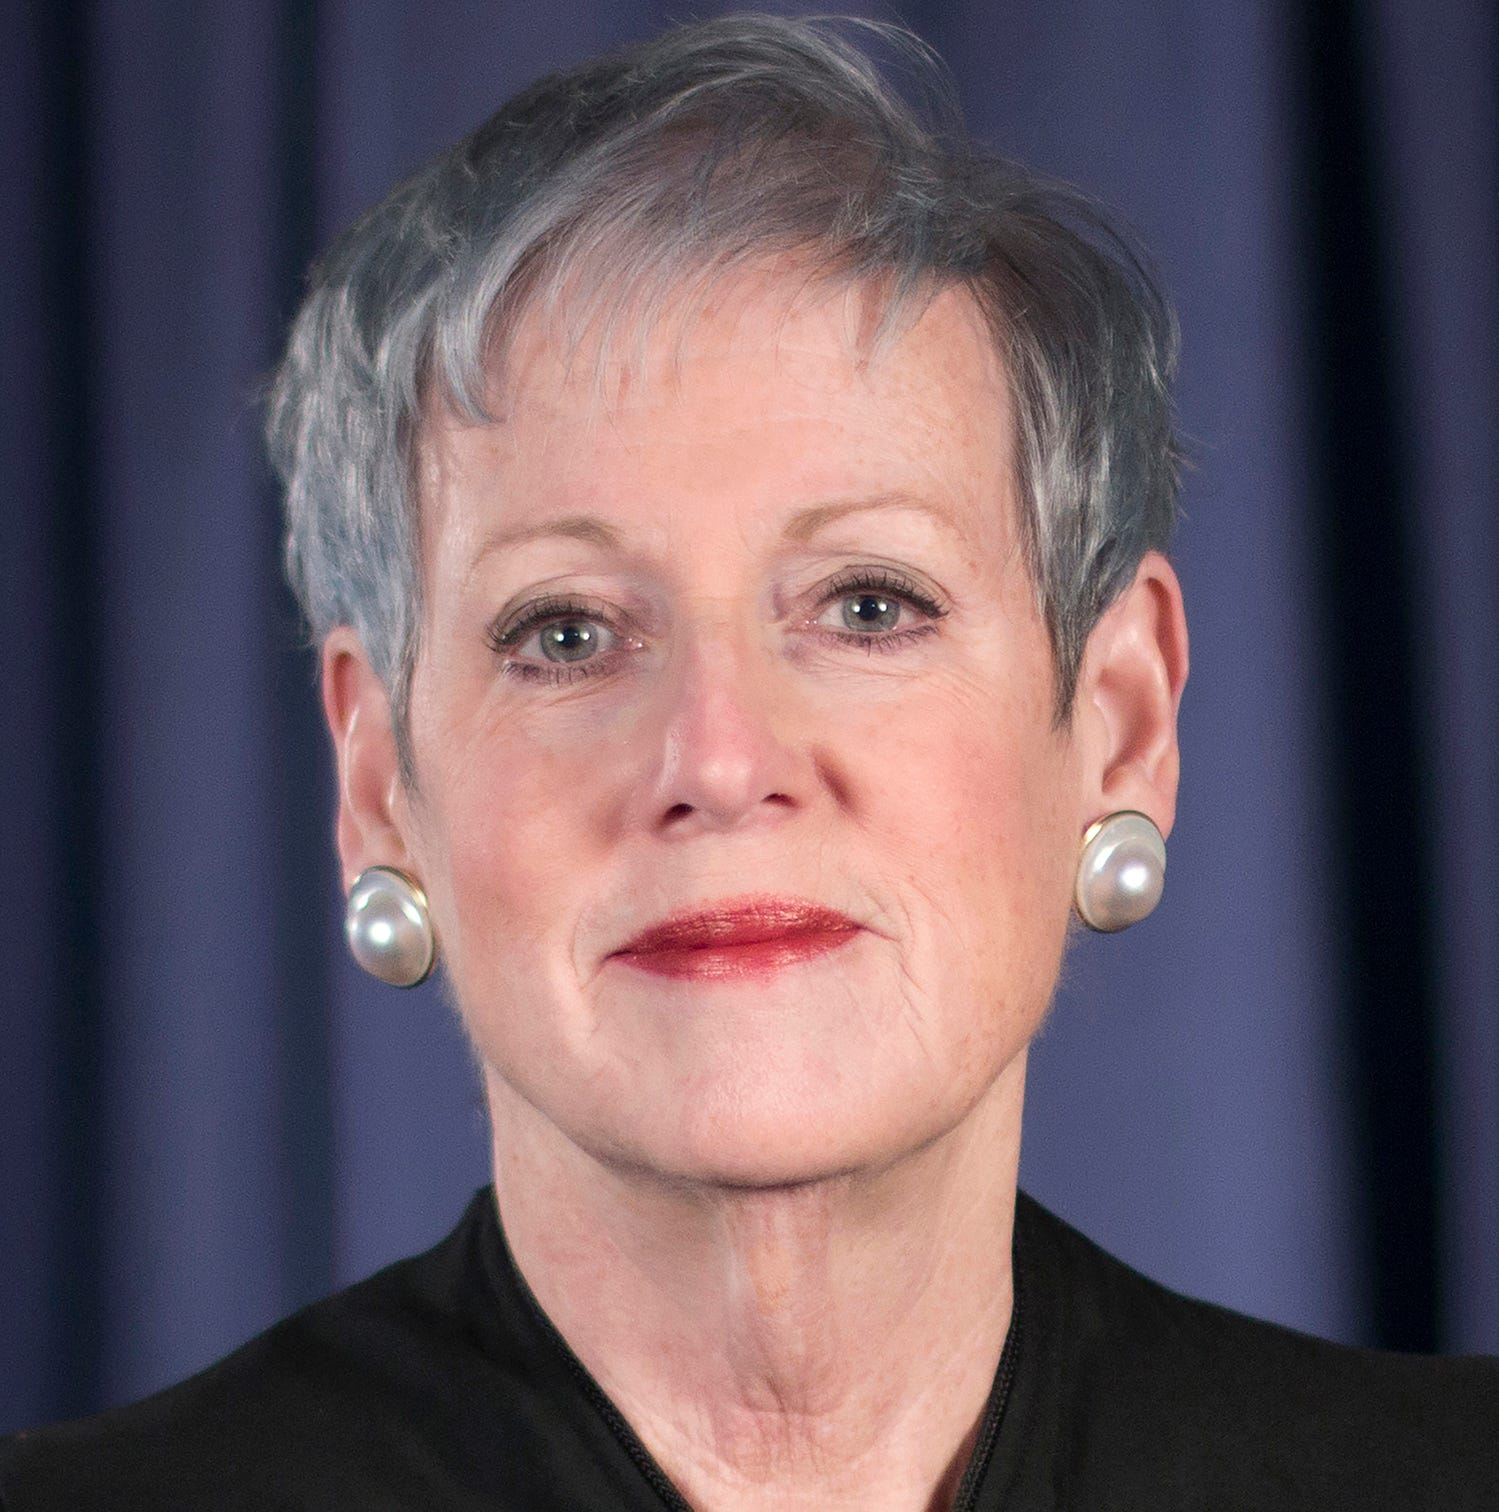 Chief Justice Maureen O'Connor of the Supreme Court of Ohio.